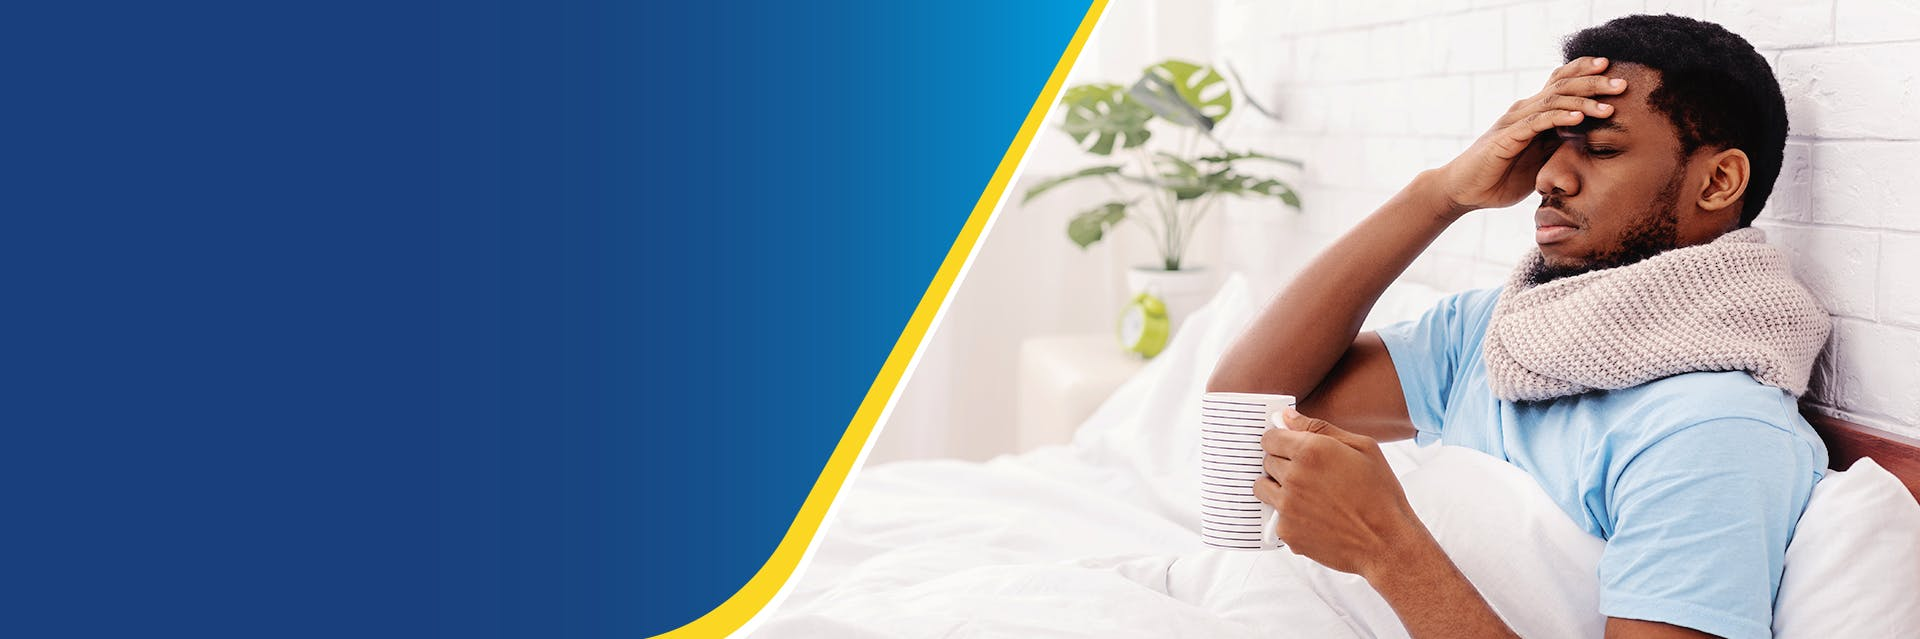 A man in bed is holding a mug and has a hand to his forehead